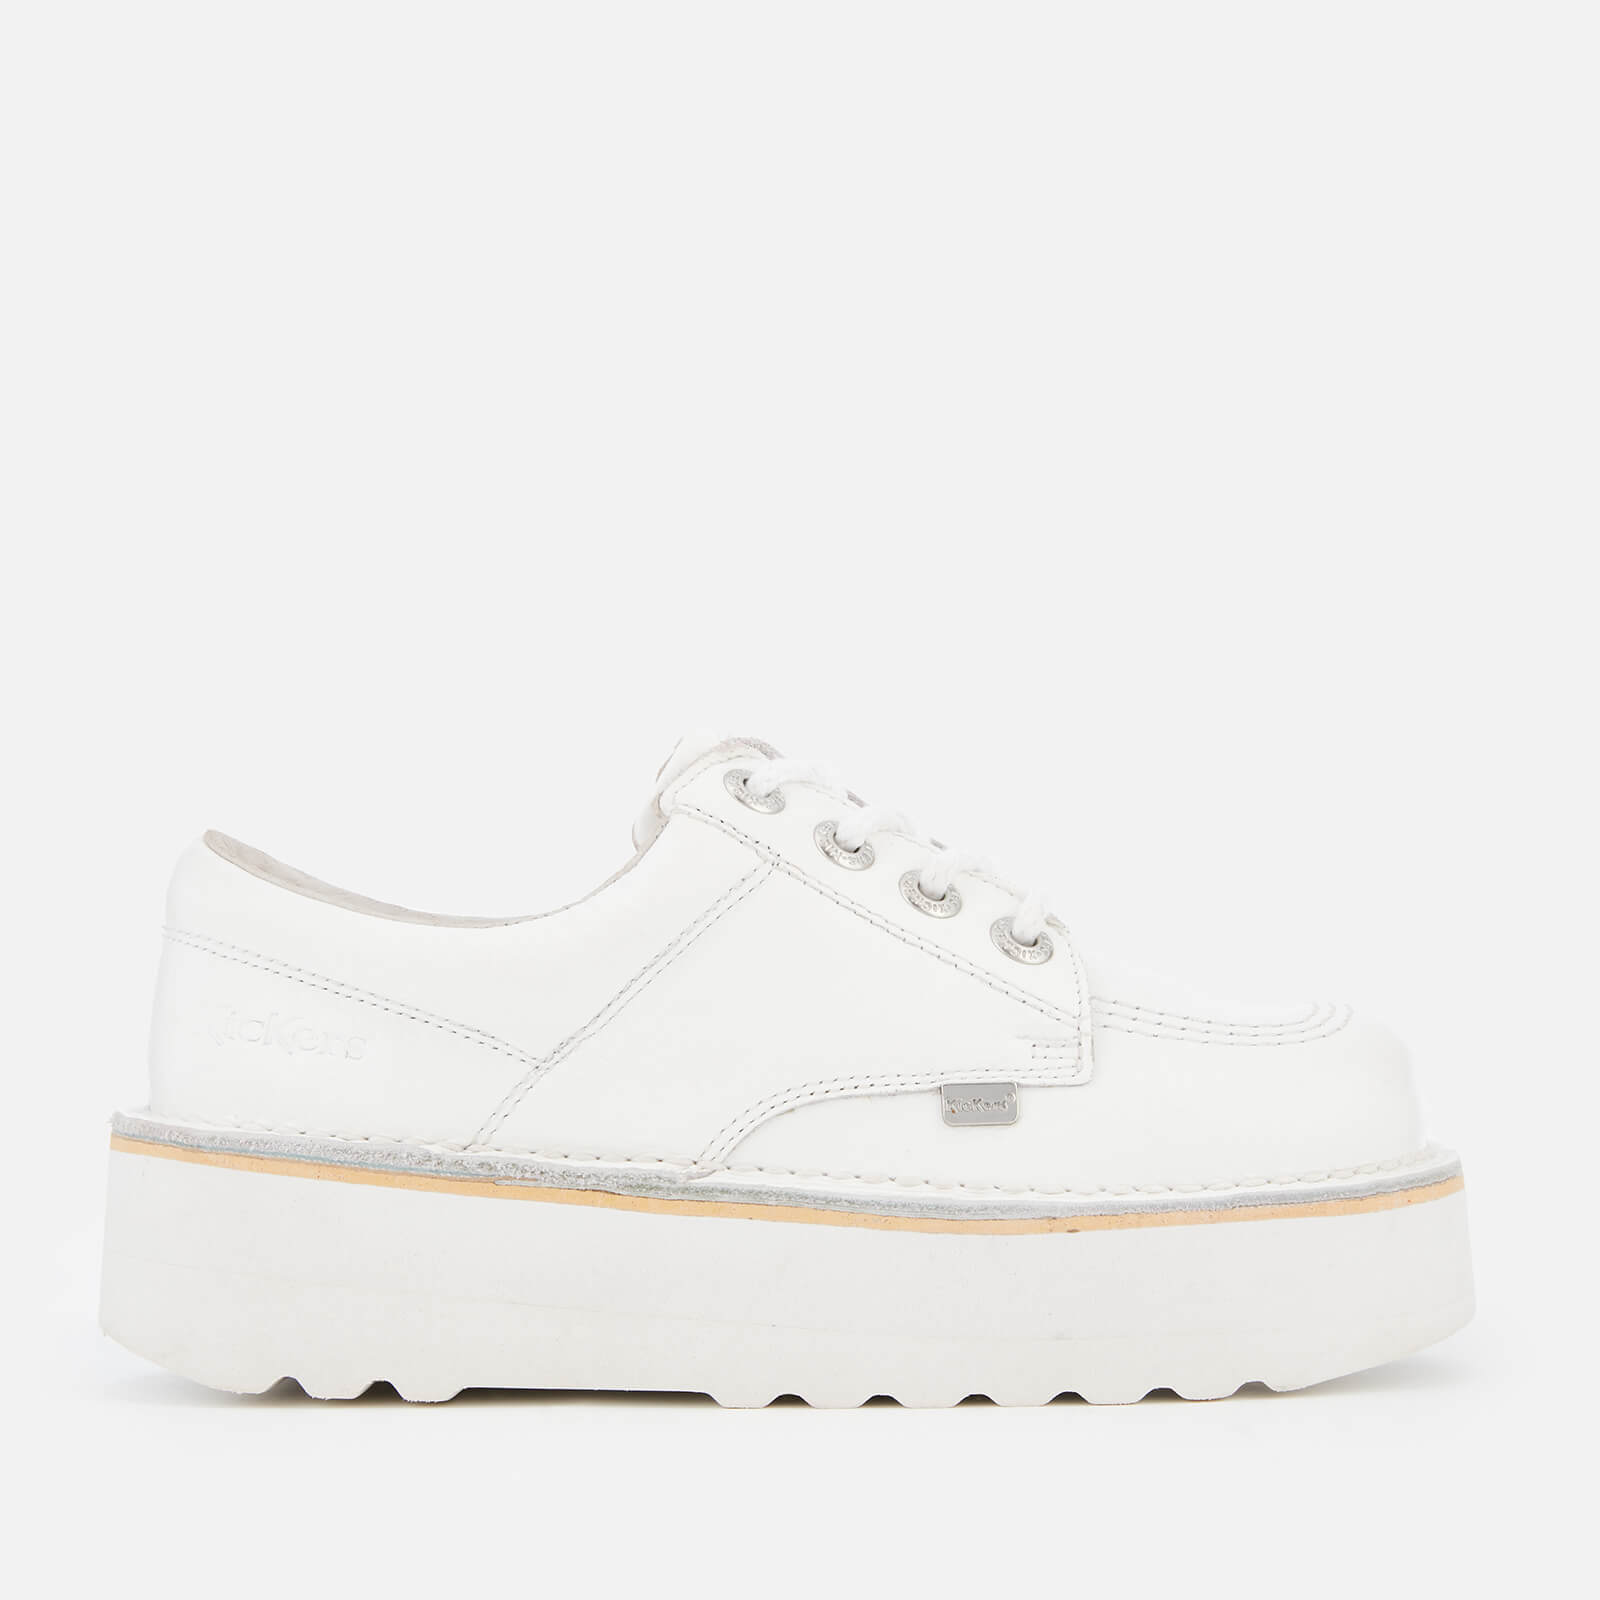 online retailer sale usa online attractive price Kickers Women's Kick Lo Stack Shoes - White/Metallic